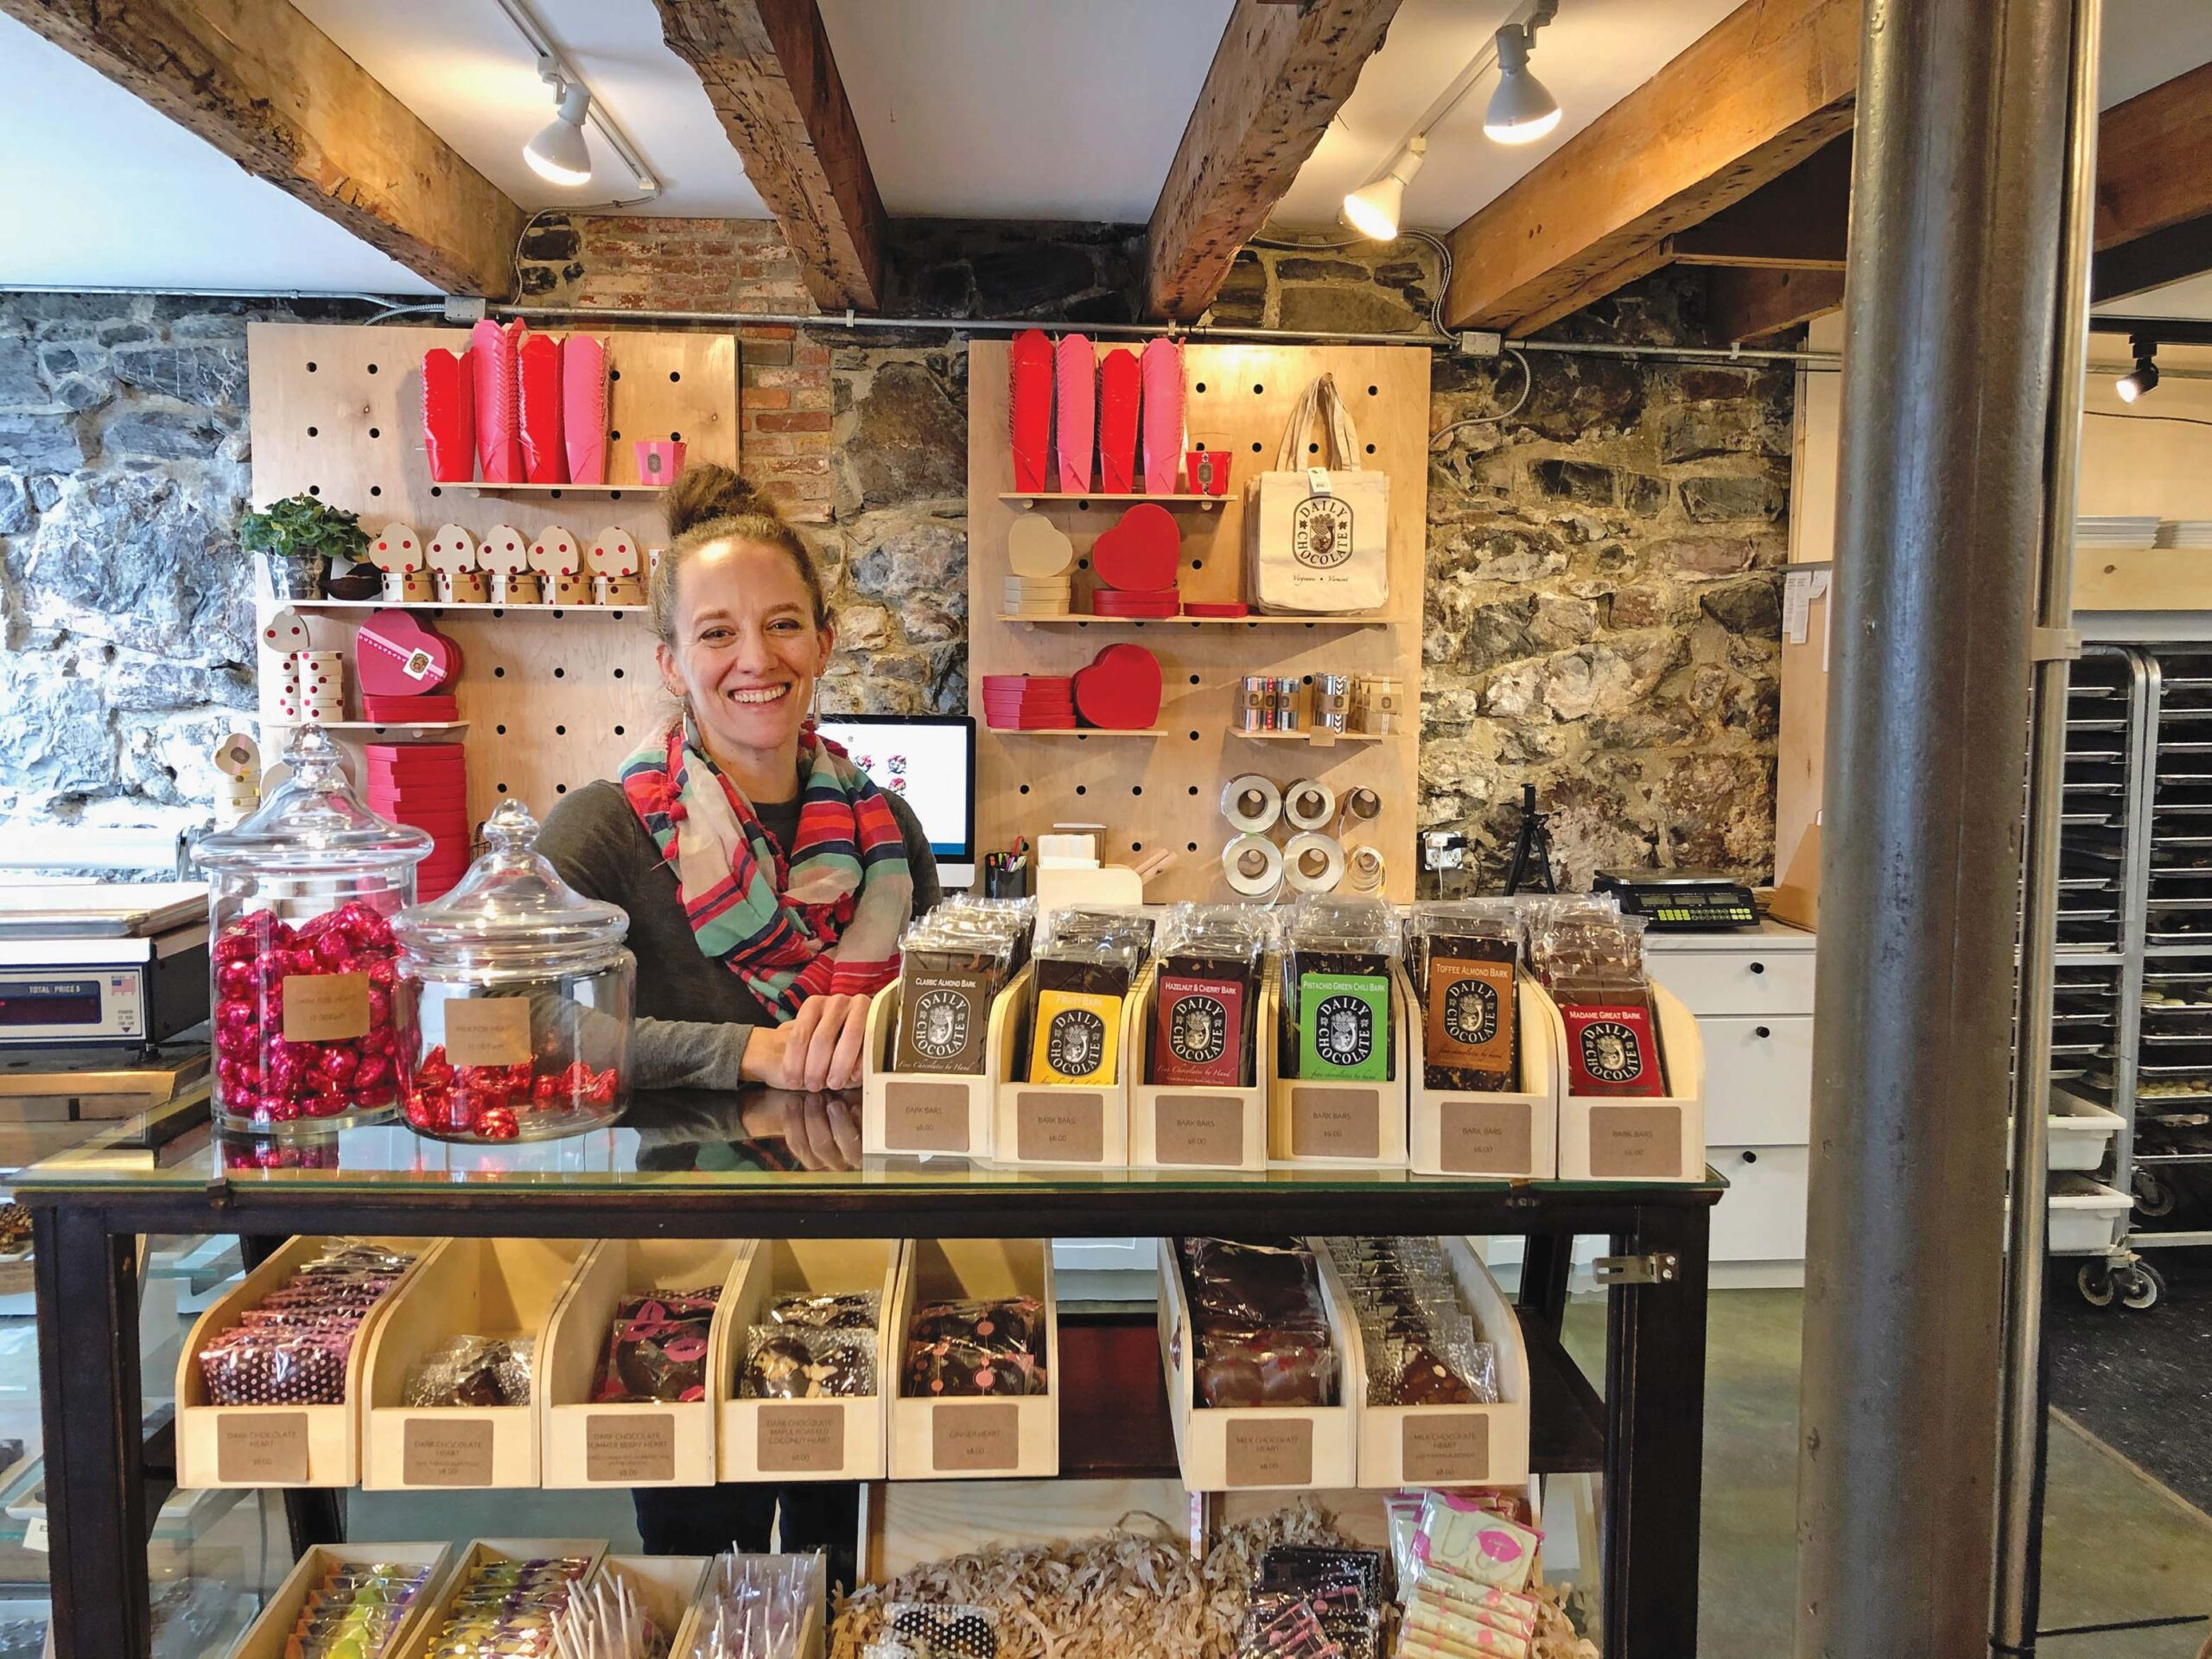 New chocolate shop owner has a sweet start